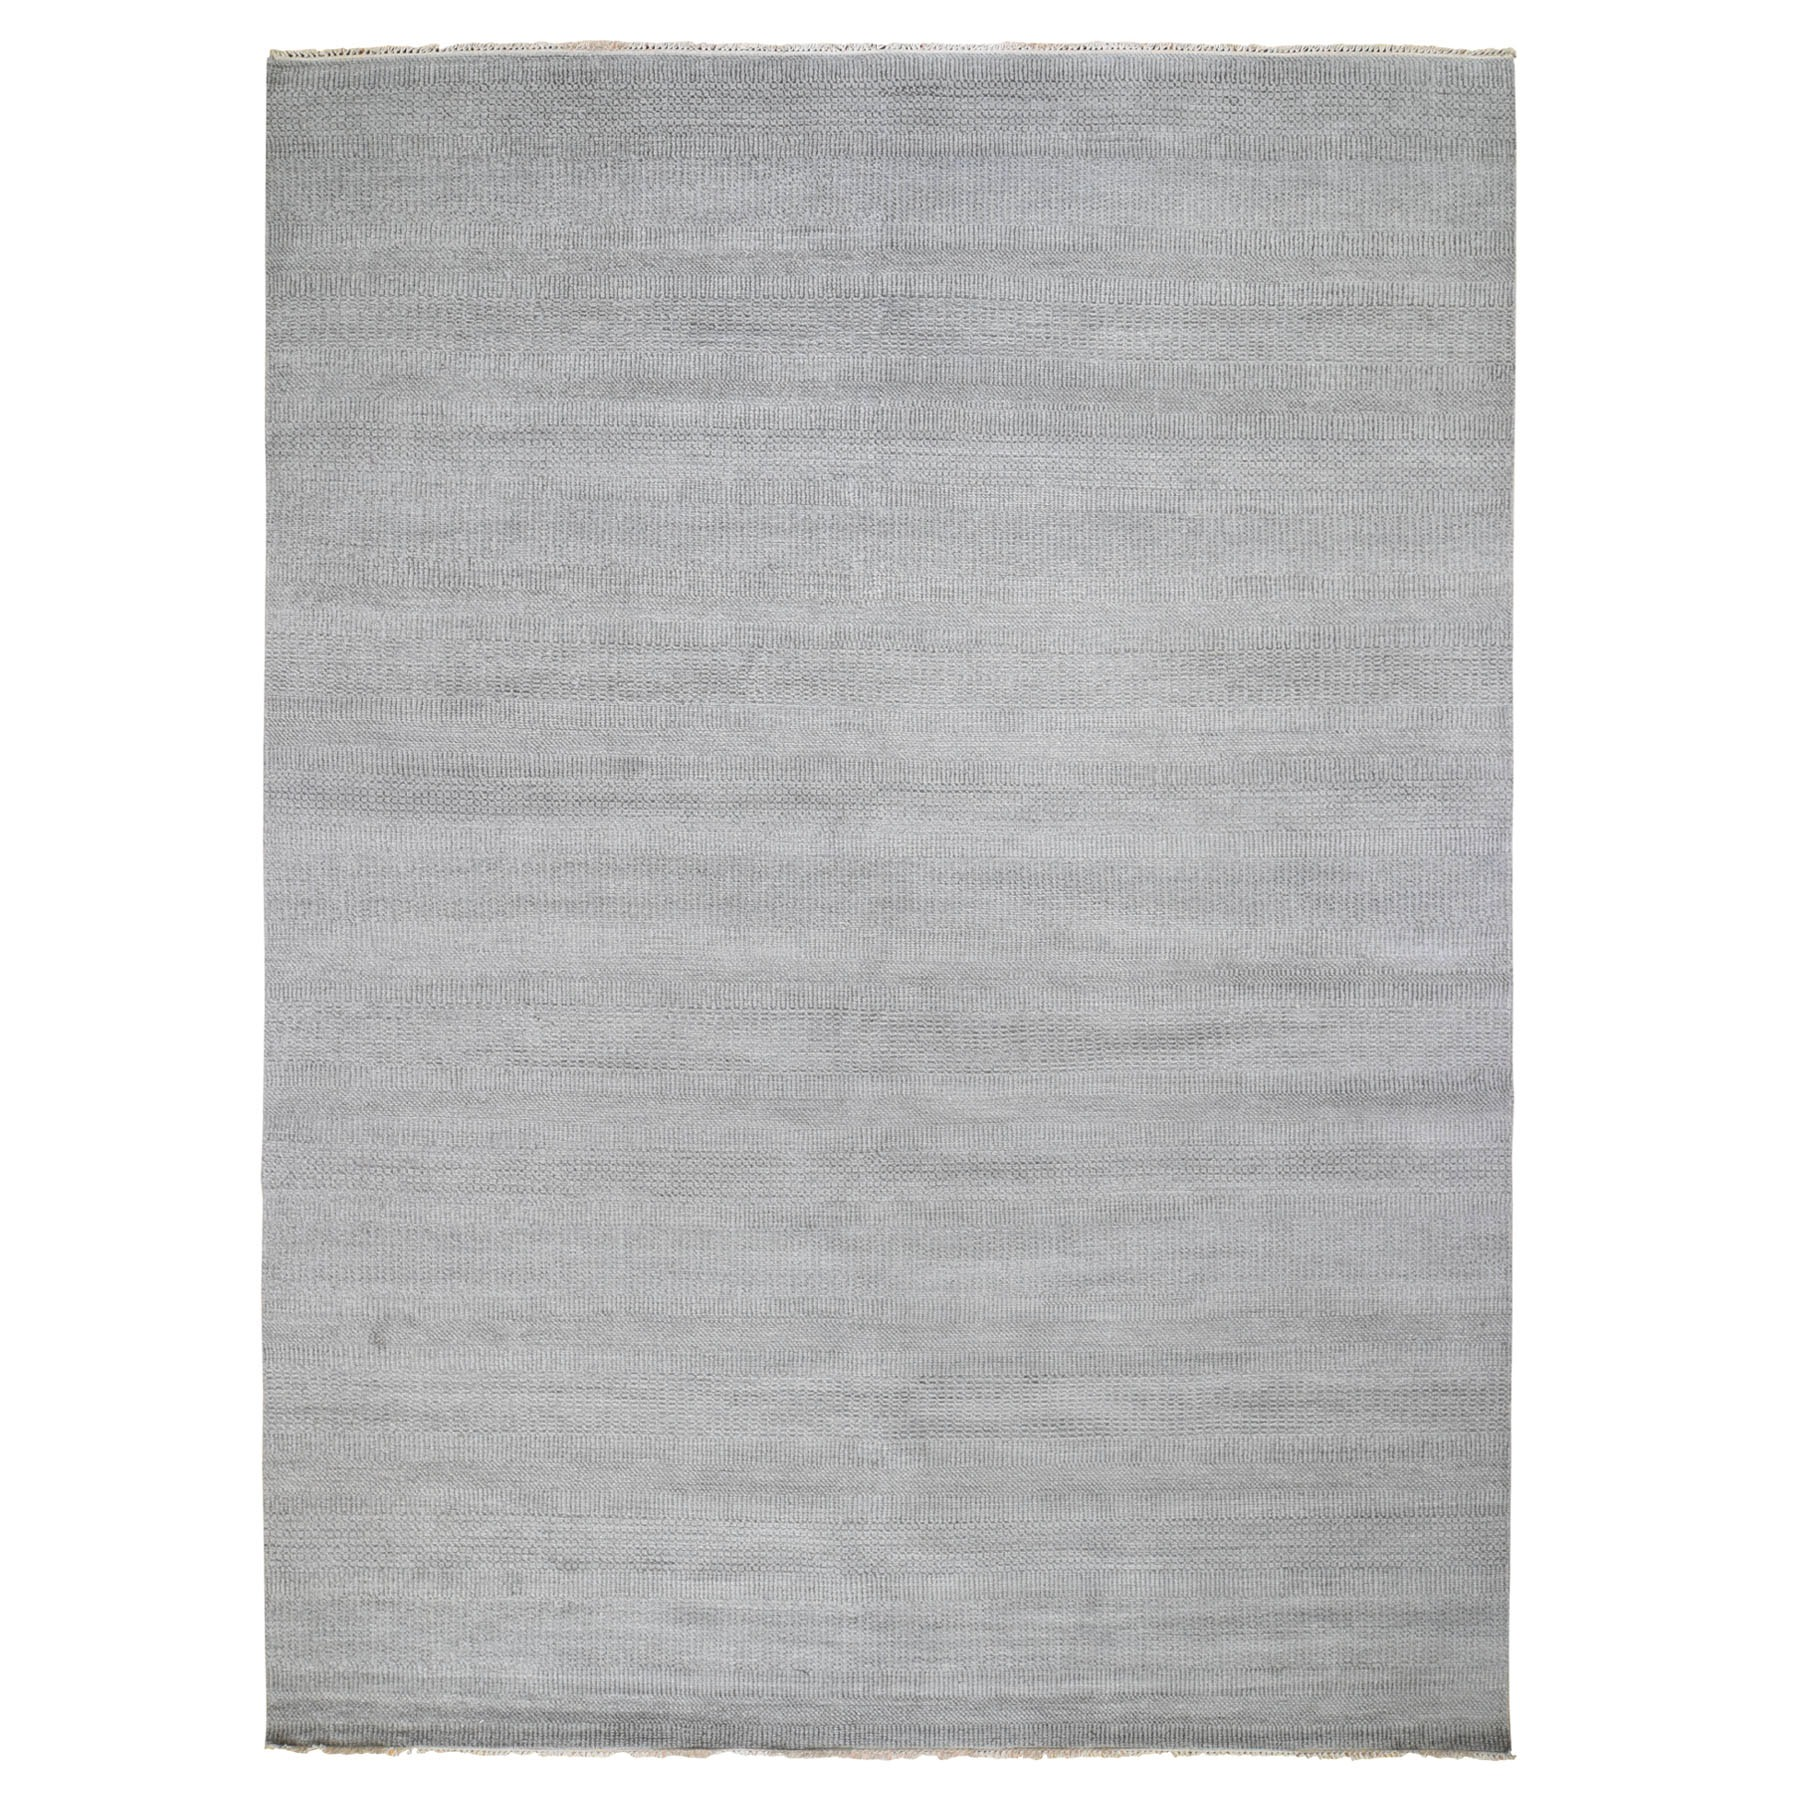 "9'2""x12'3"" Gray Wool and Silk Grass Design Thick And Plush Hand Knotted Oriental Rug"